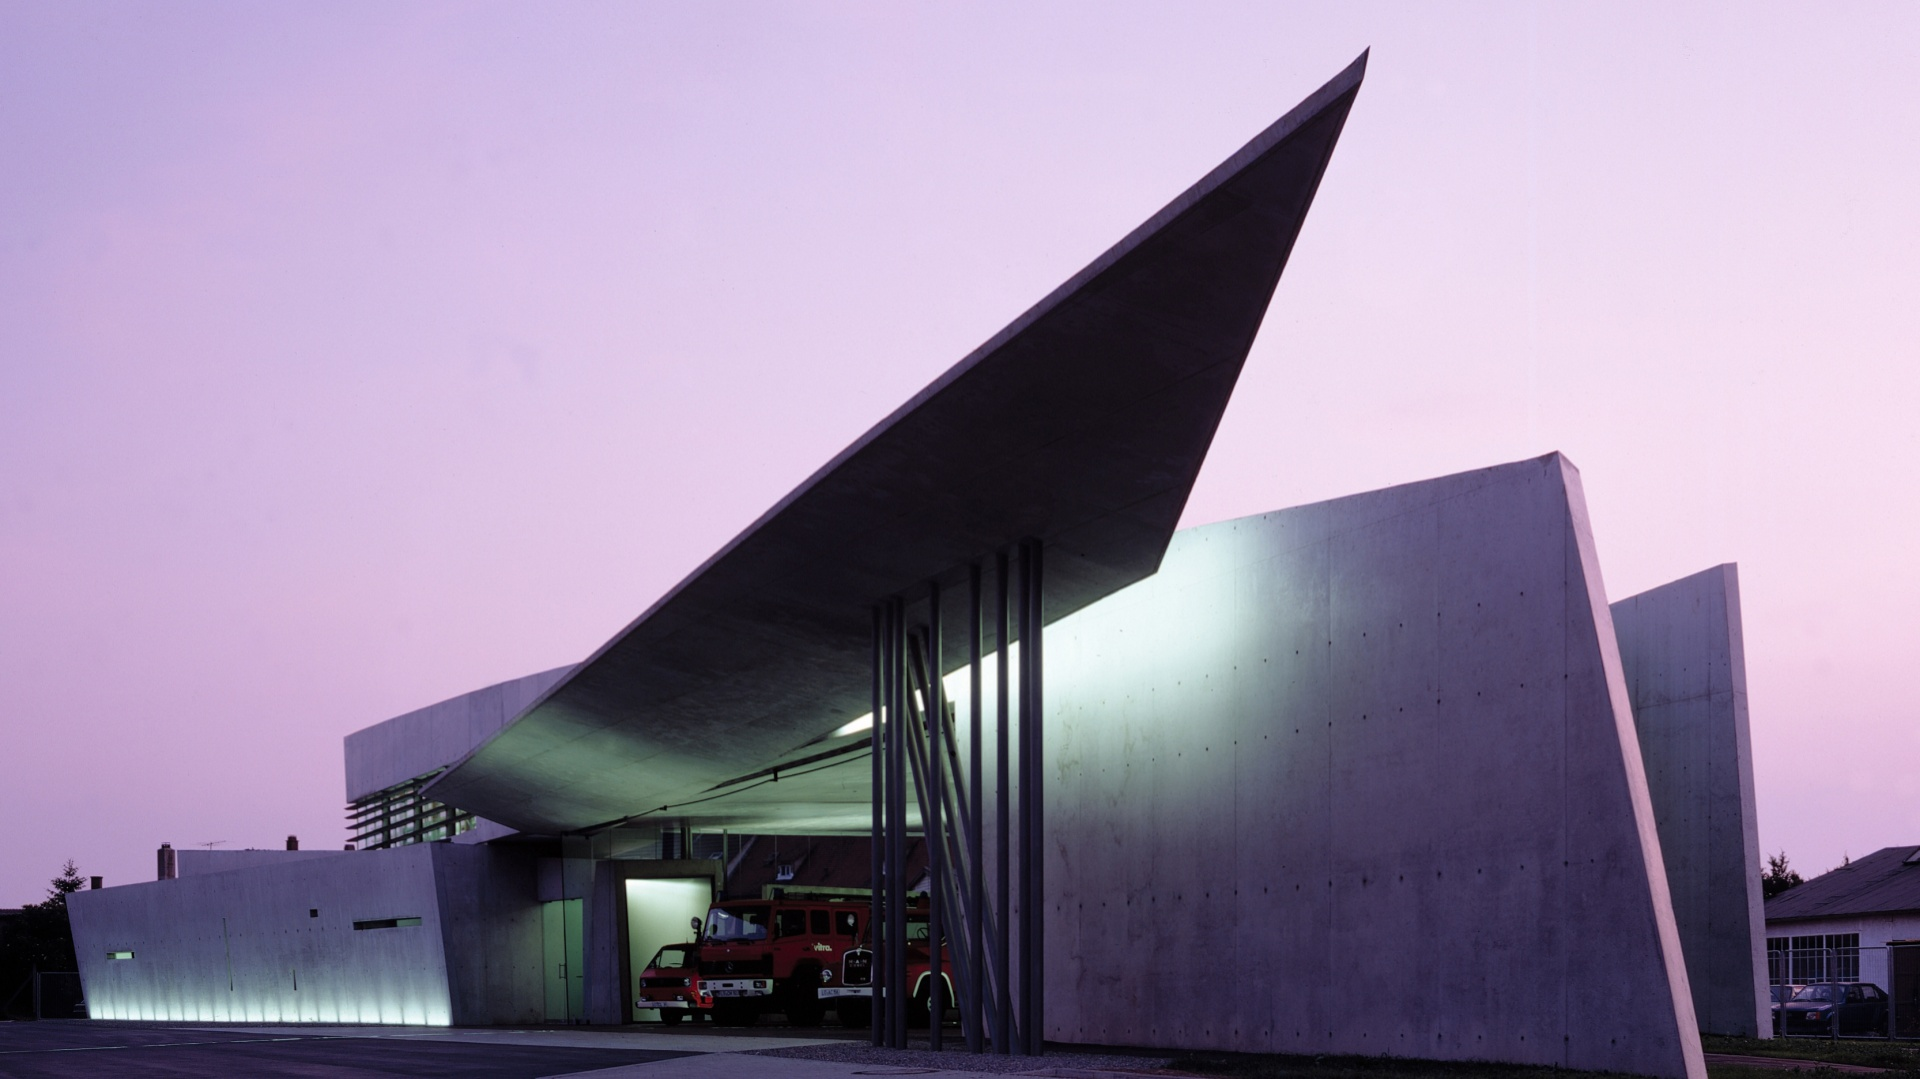 Vitra Fire Station, Weil am Rhein,Niemcy. Fot. Christian Richters.